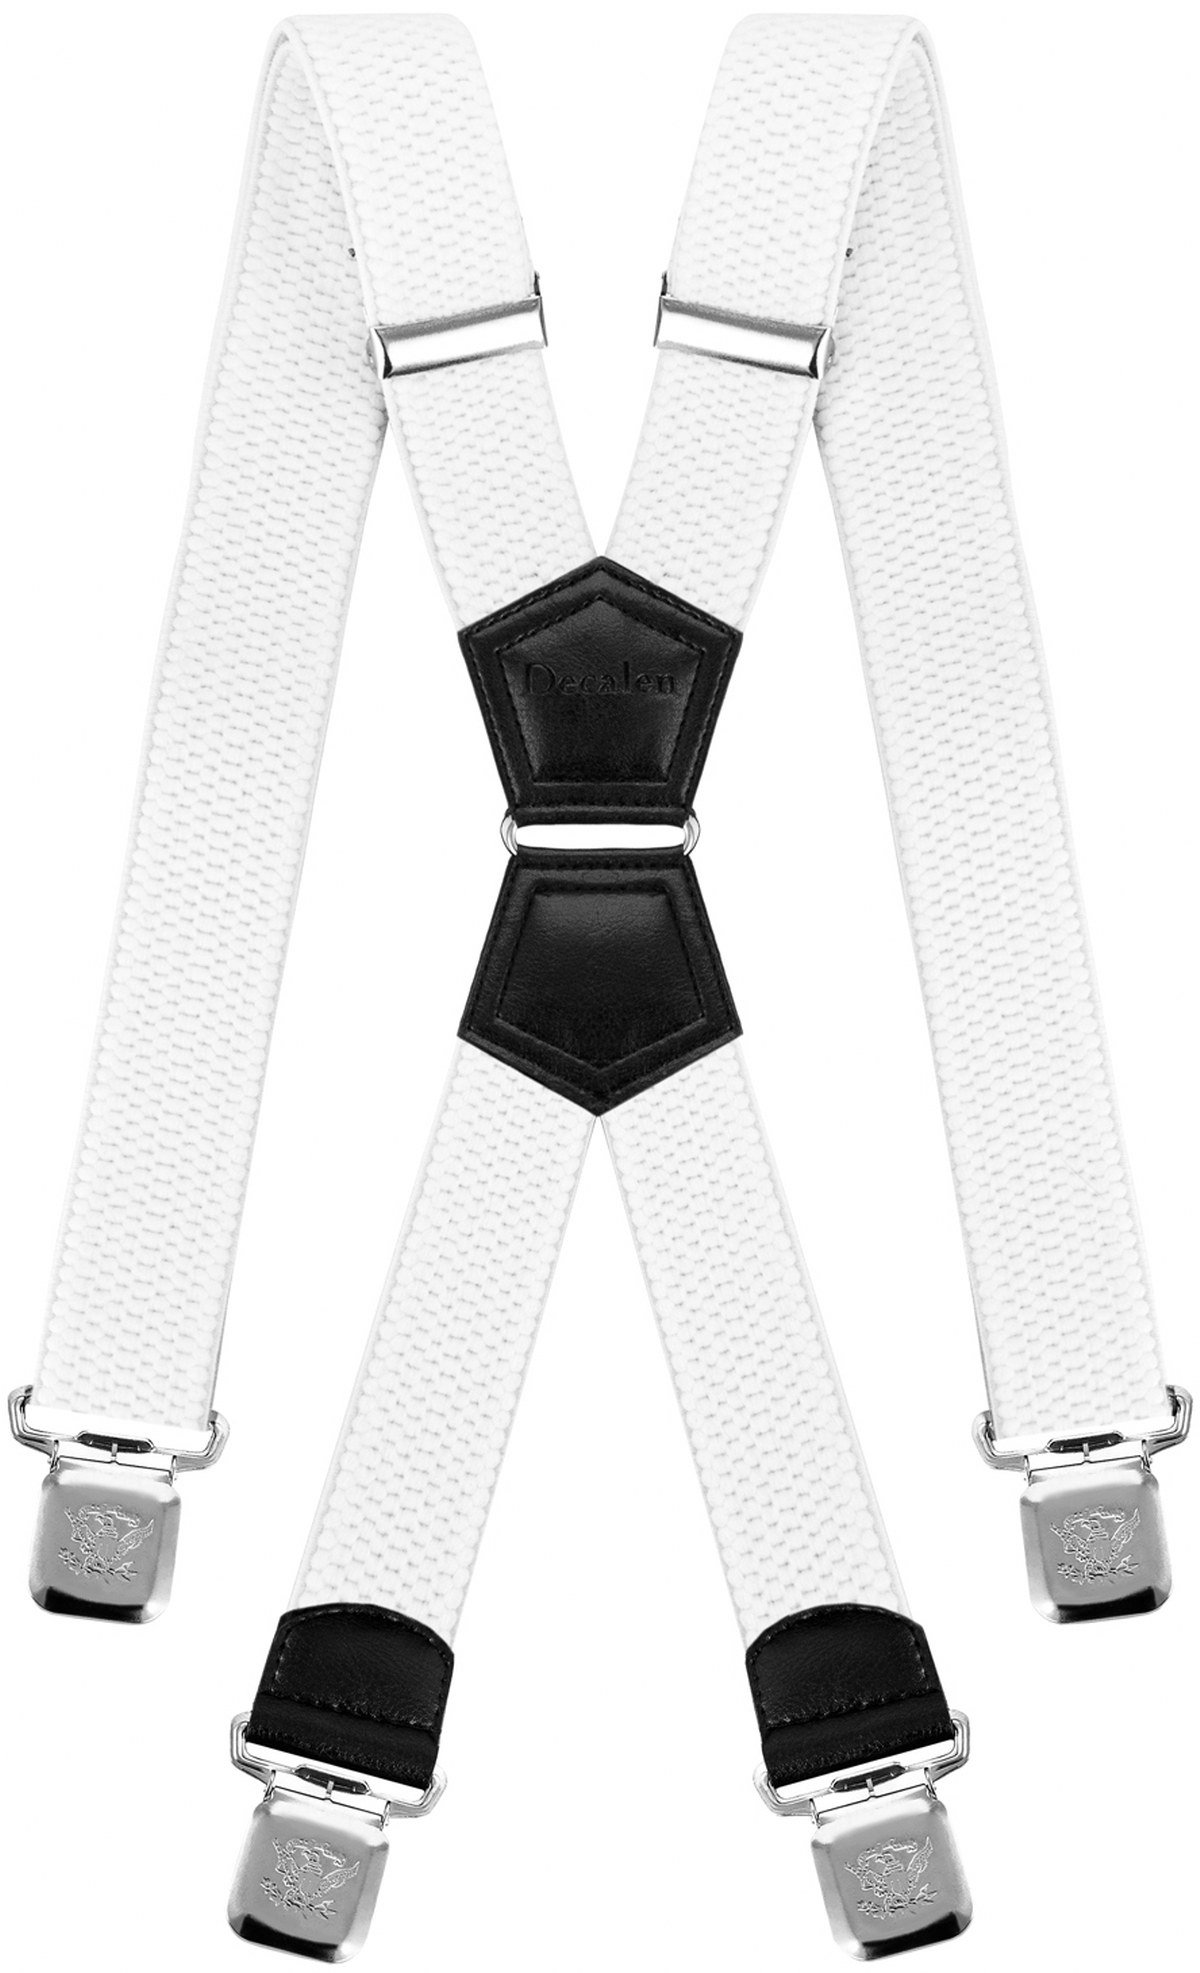 Mens Suspenders X Style Very Strong Clips Adjustable One Size Fits All Heavy Duty Braces (White)